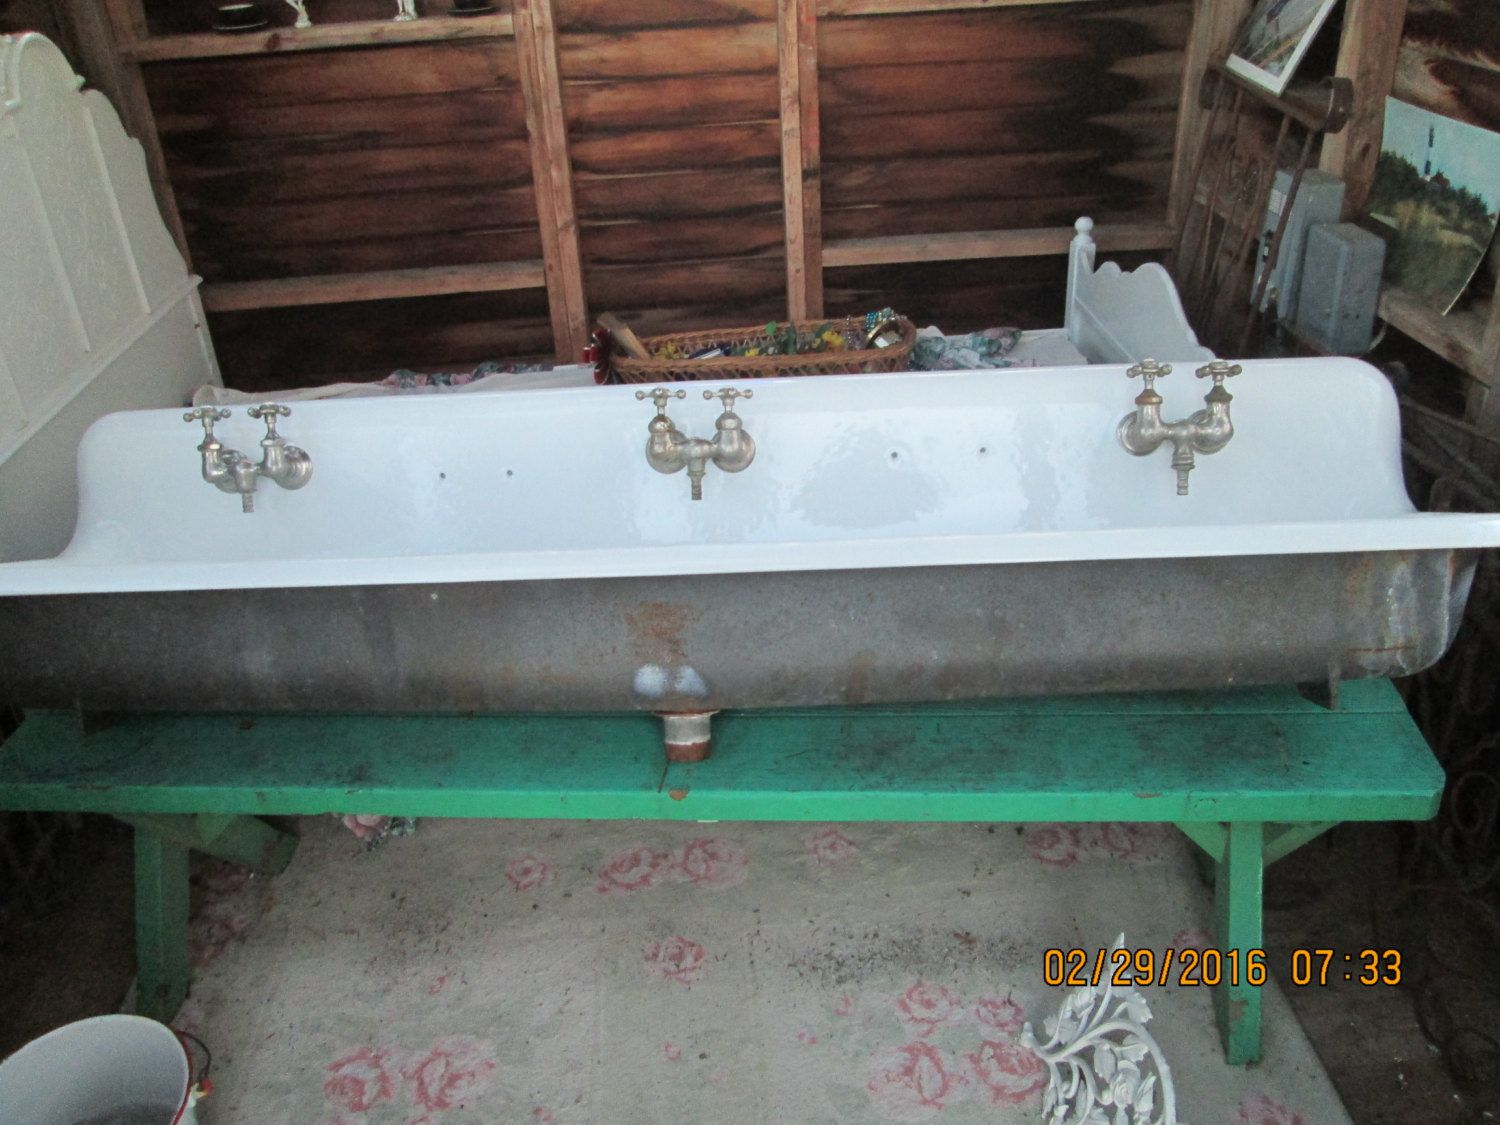 Vintage Cast Iron Farm Sink 6ft Long Trough / Industrial Gang Sink!  Sparkling Mint Condition. Great History. Perfect For Home Or Restaurant. By  ...